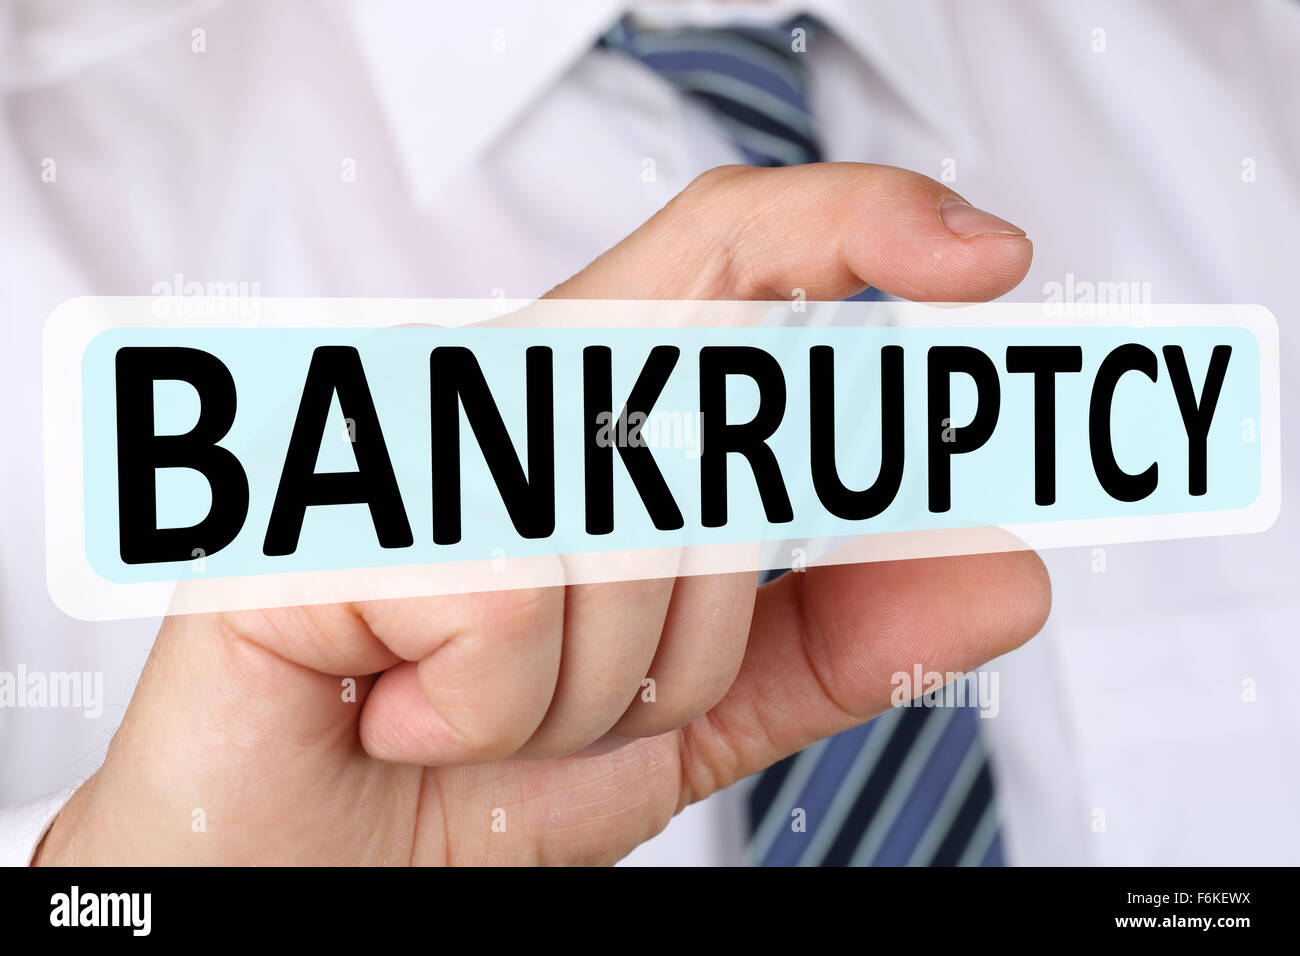 Businessman business concept with bankruptcy depts crisis deficit bankrupt financial - Stock Image